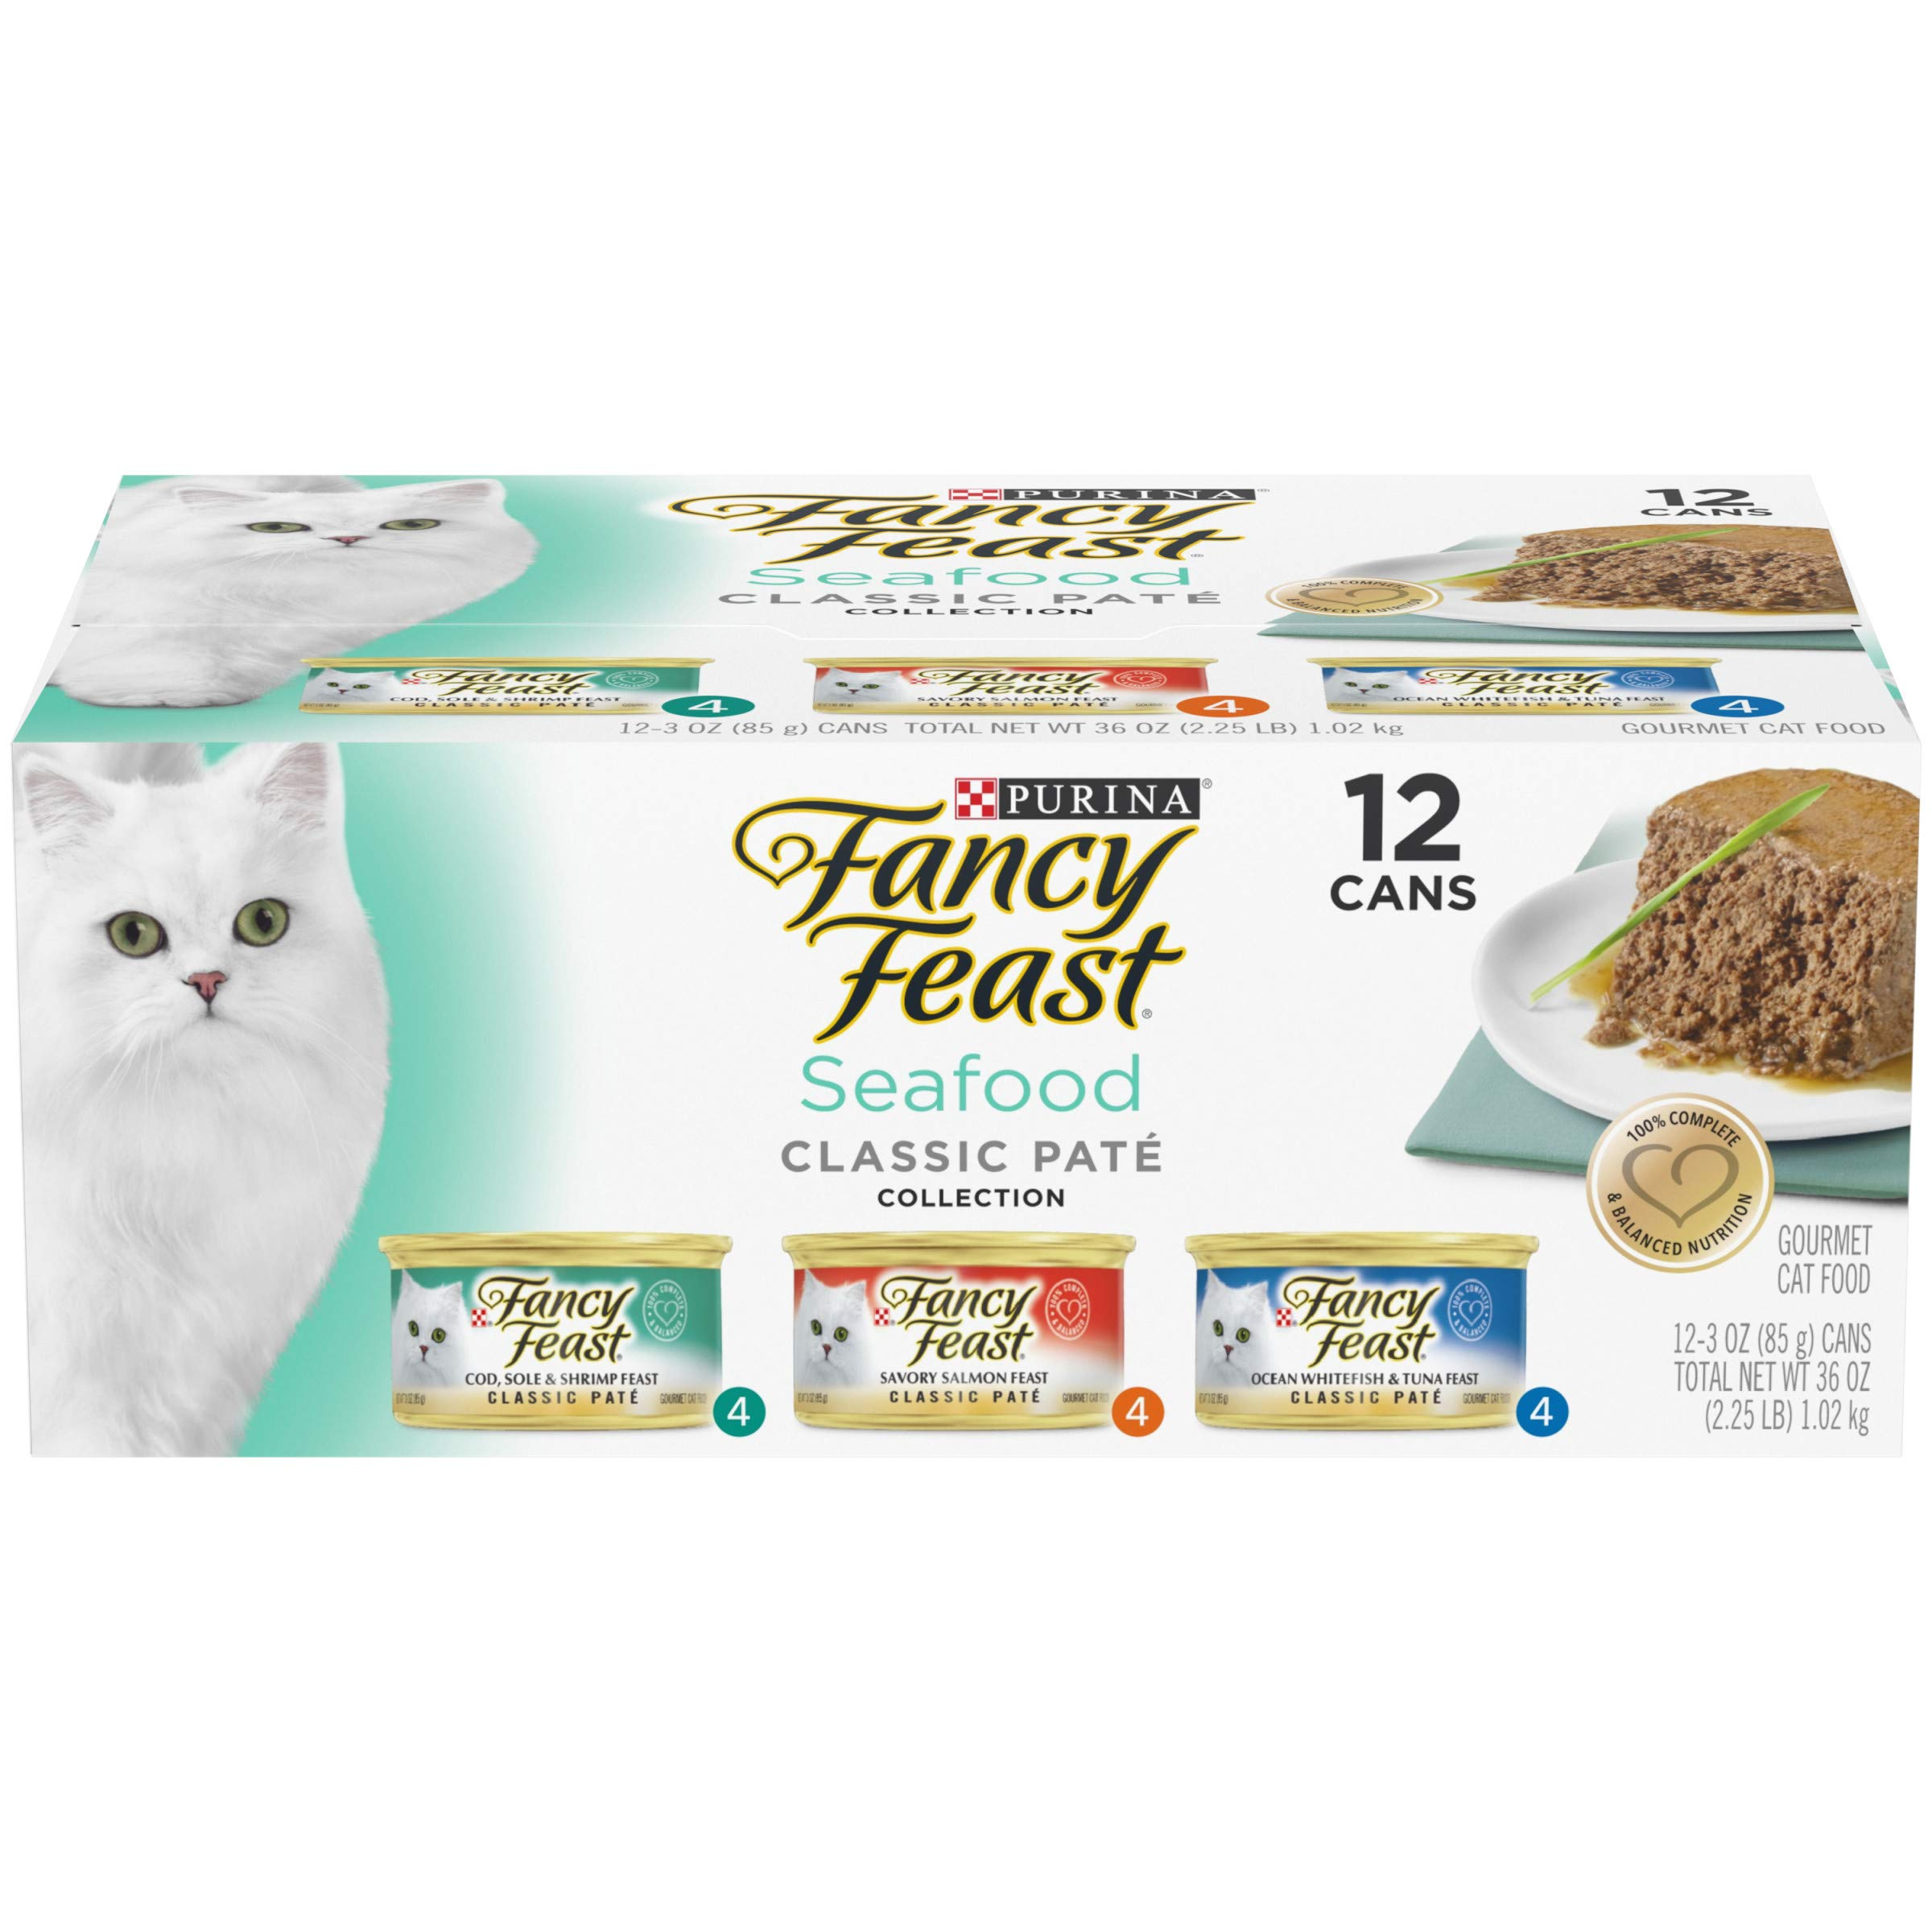 Purina Fancy Feast Grain Free Pate Wet Cat Food Variety Pack; Seafood Classic Pate Collection